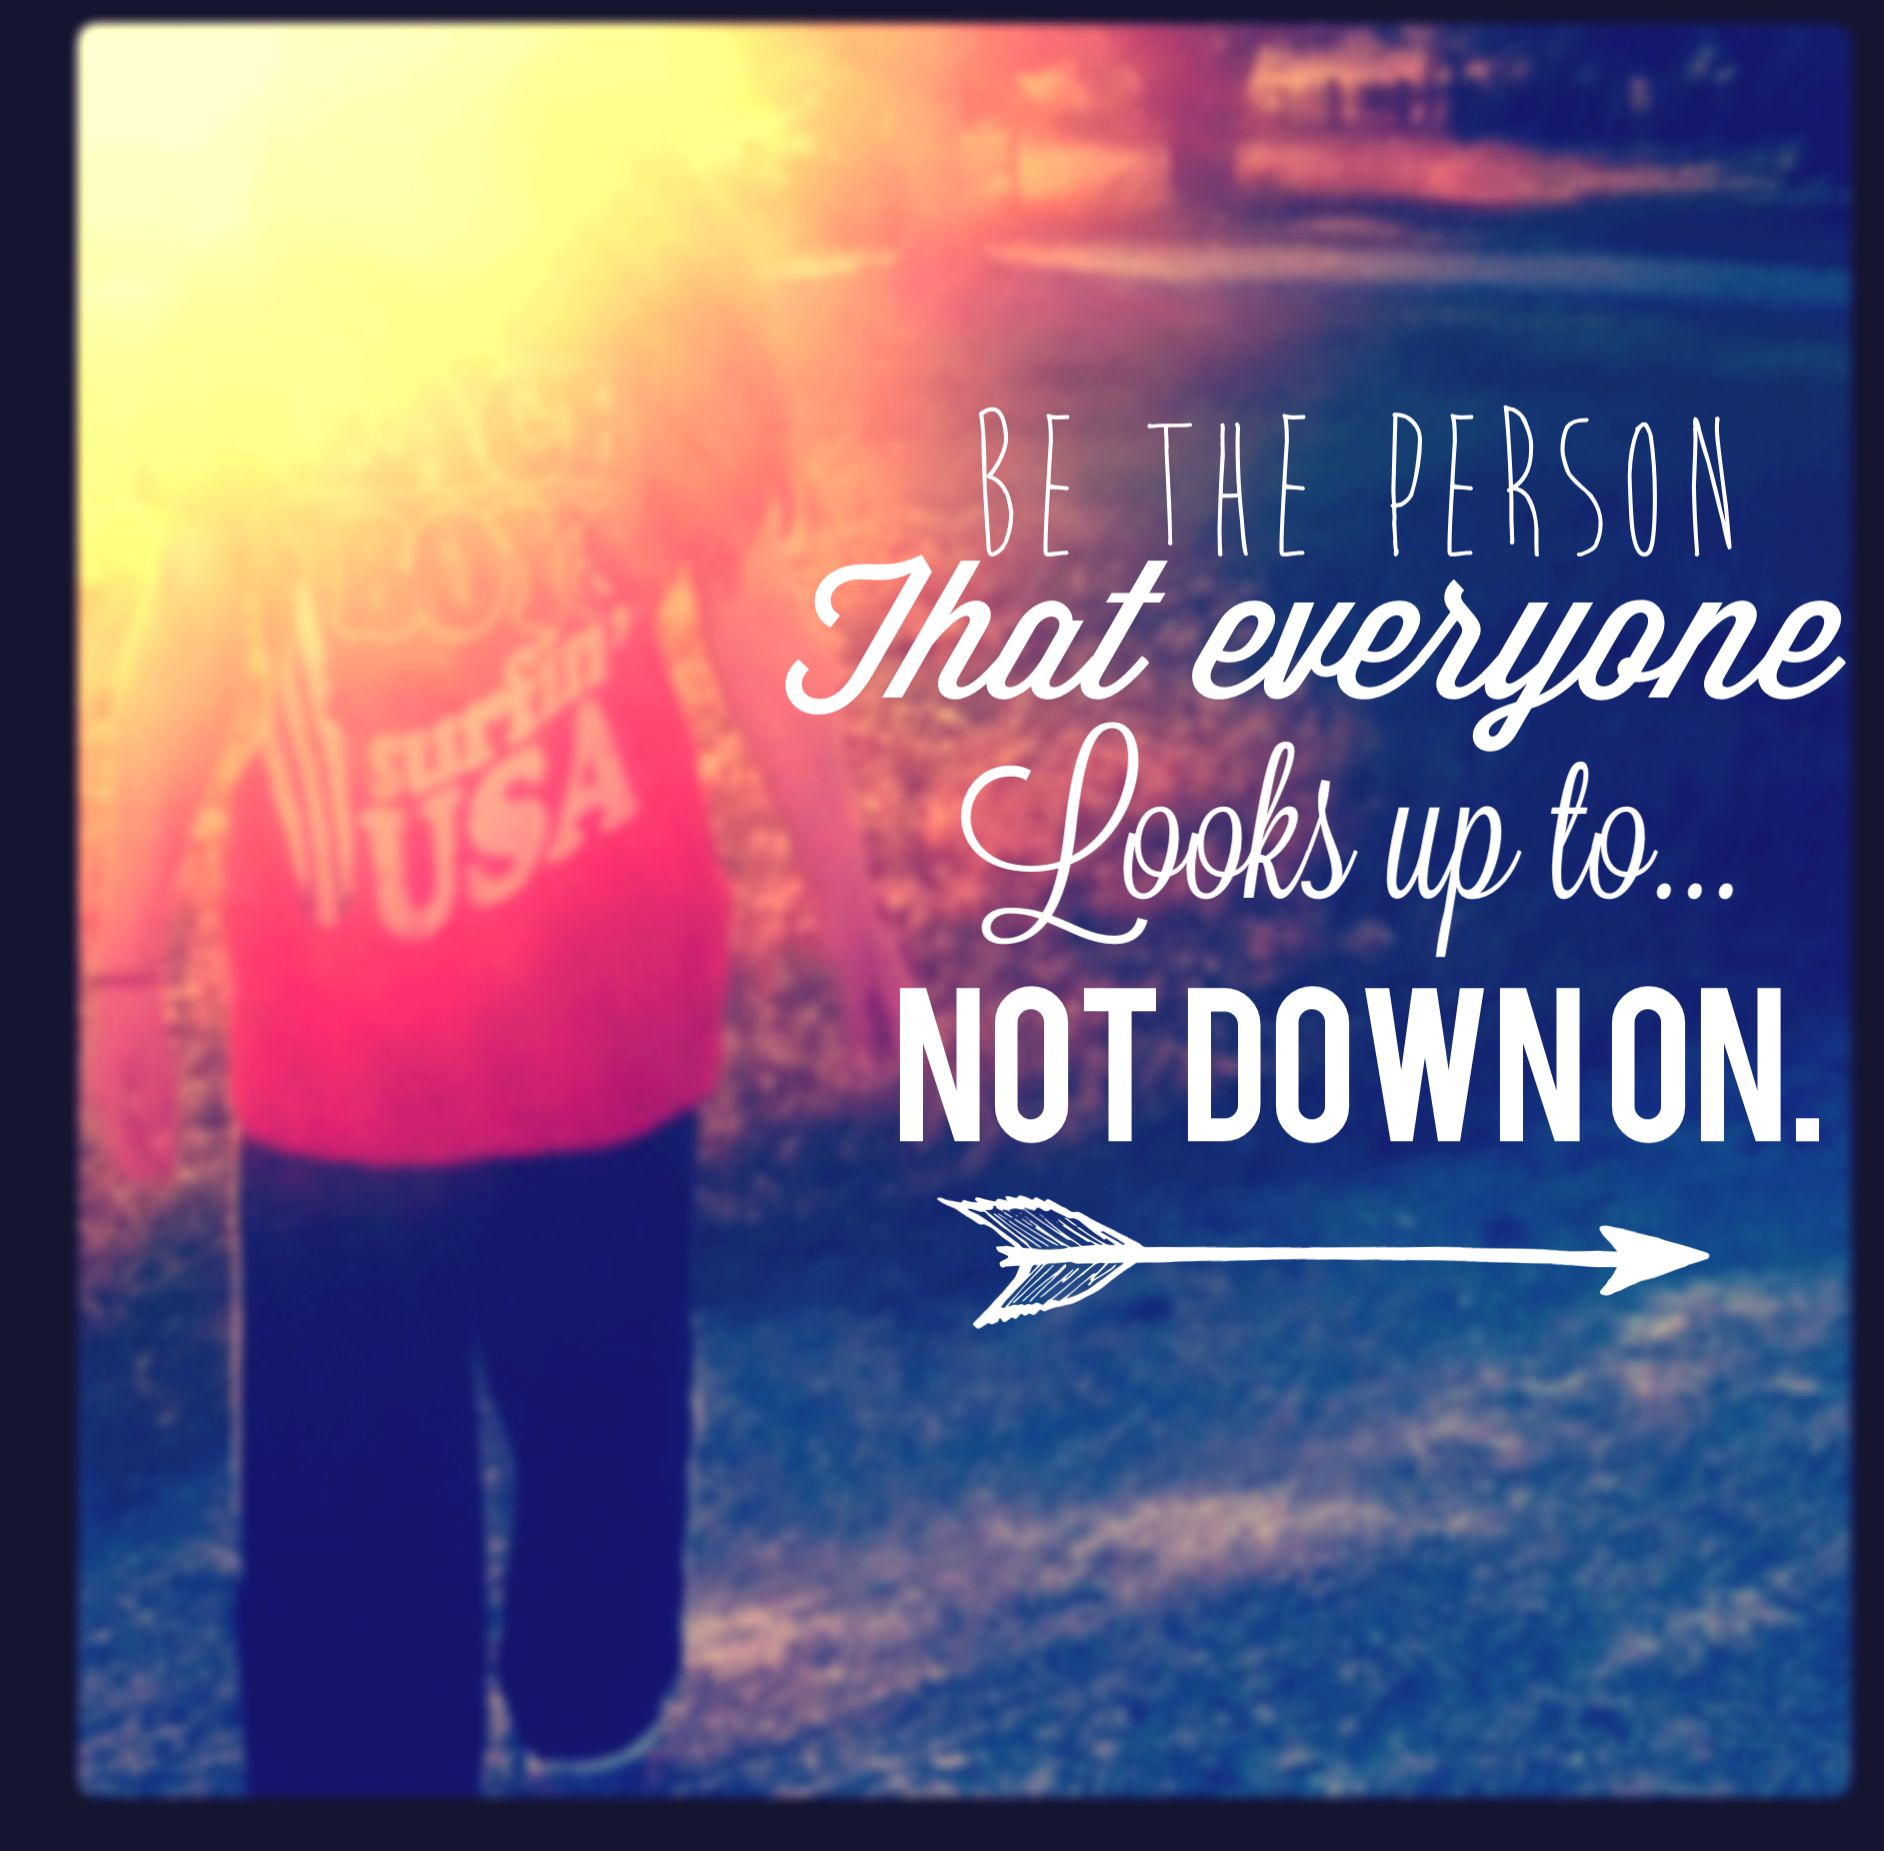 Be The Person That Everyone Looks Up To, Not Down On Go